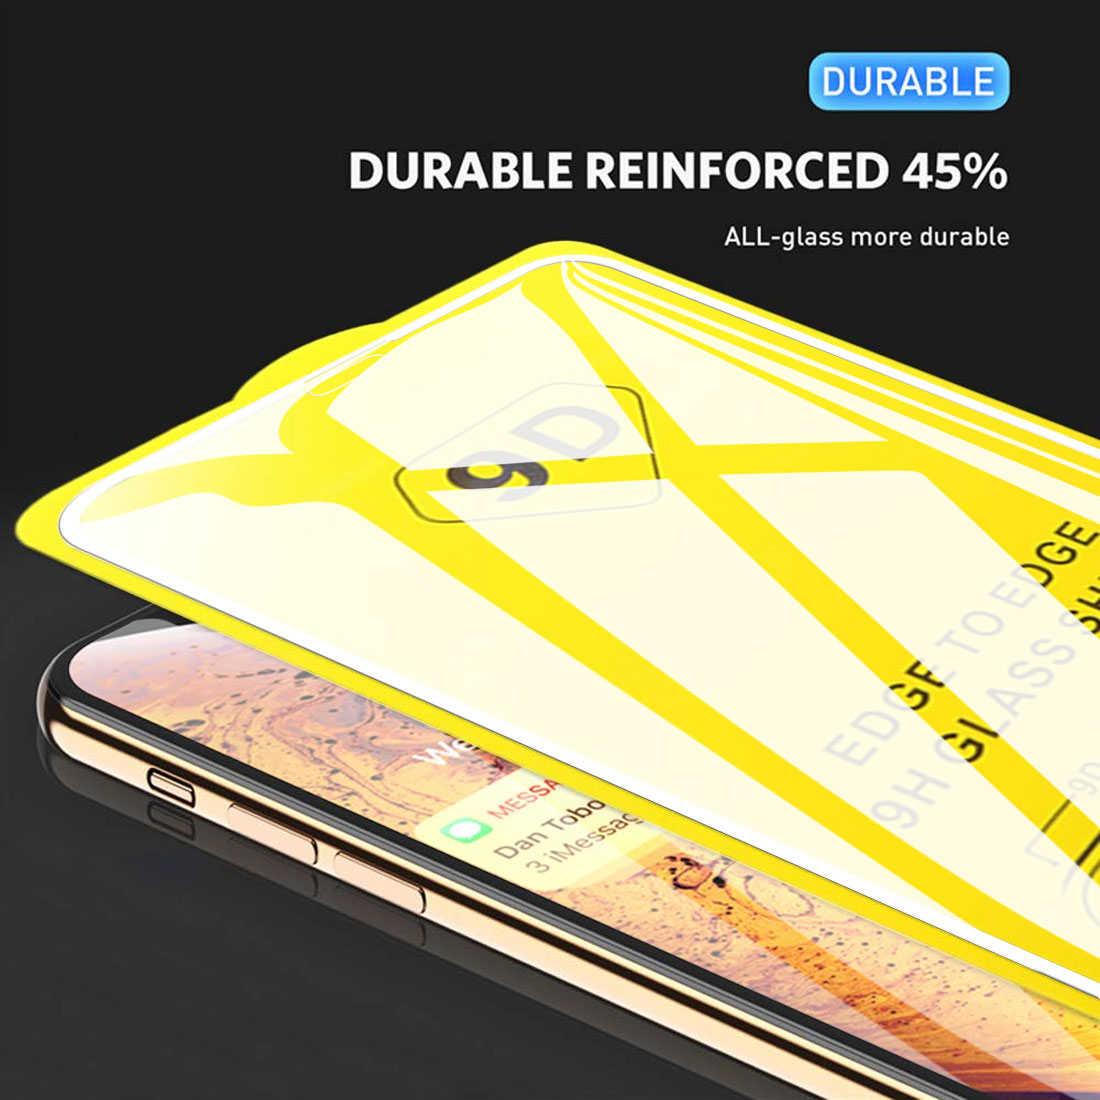 9D Full Cover Tempered glass New  For Iphone 8 /8 Plus/ X/ XS/ XR/ XS Max full cover screen protector film Case professional